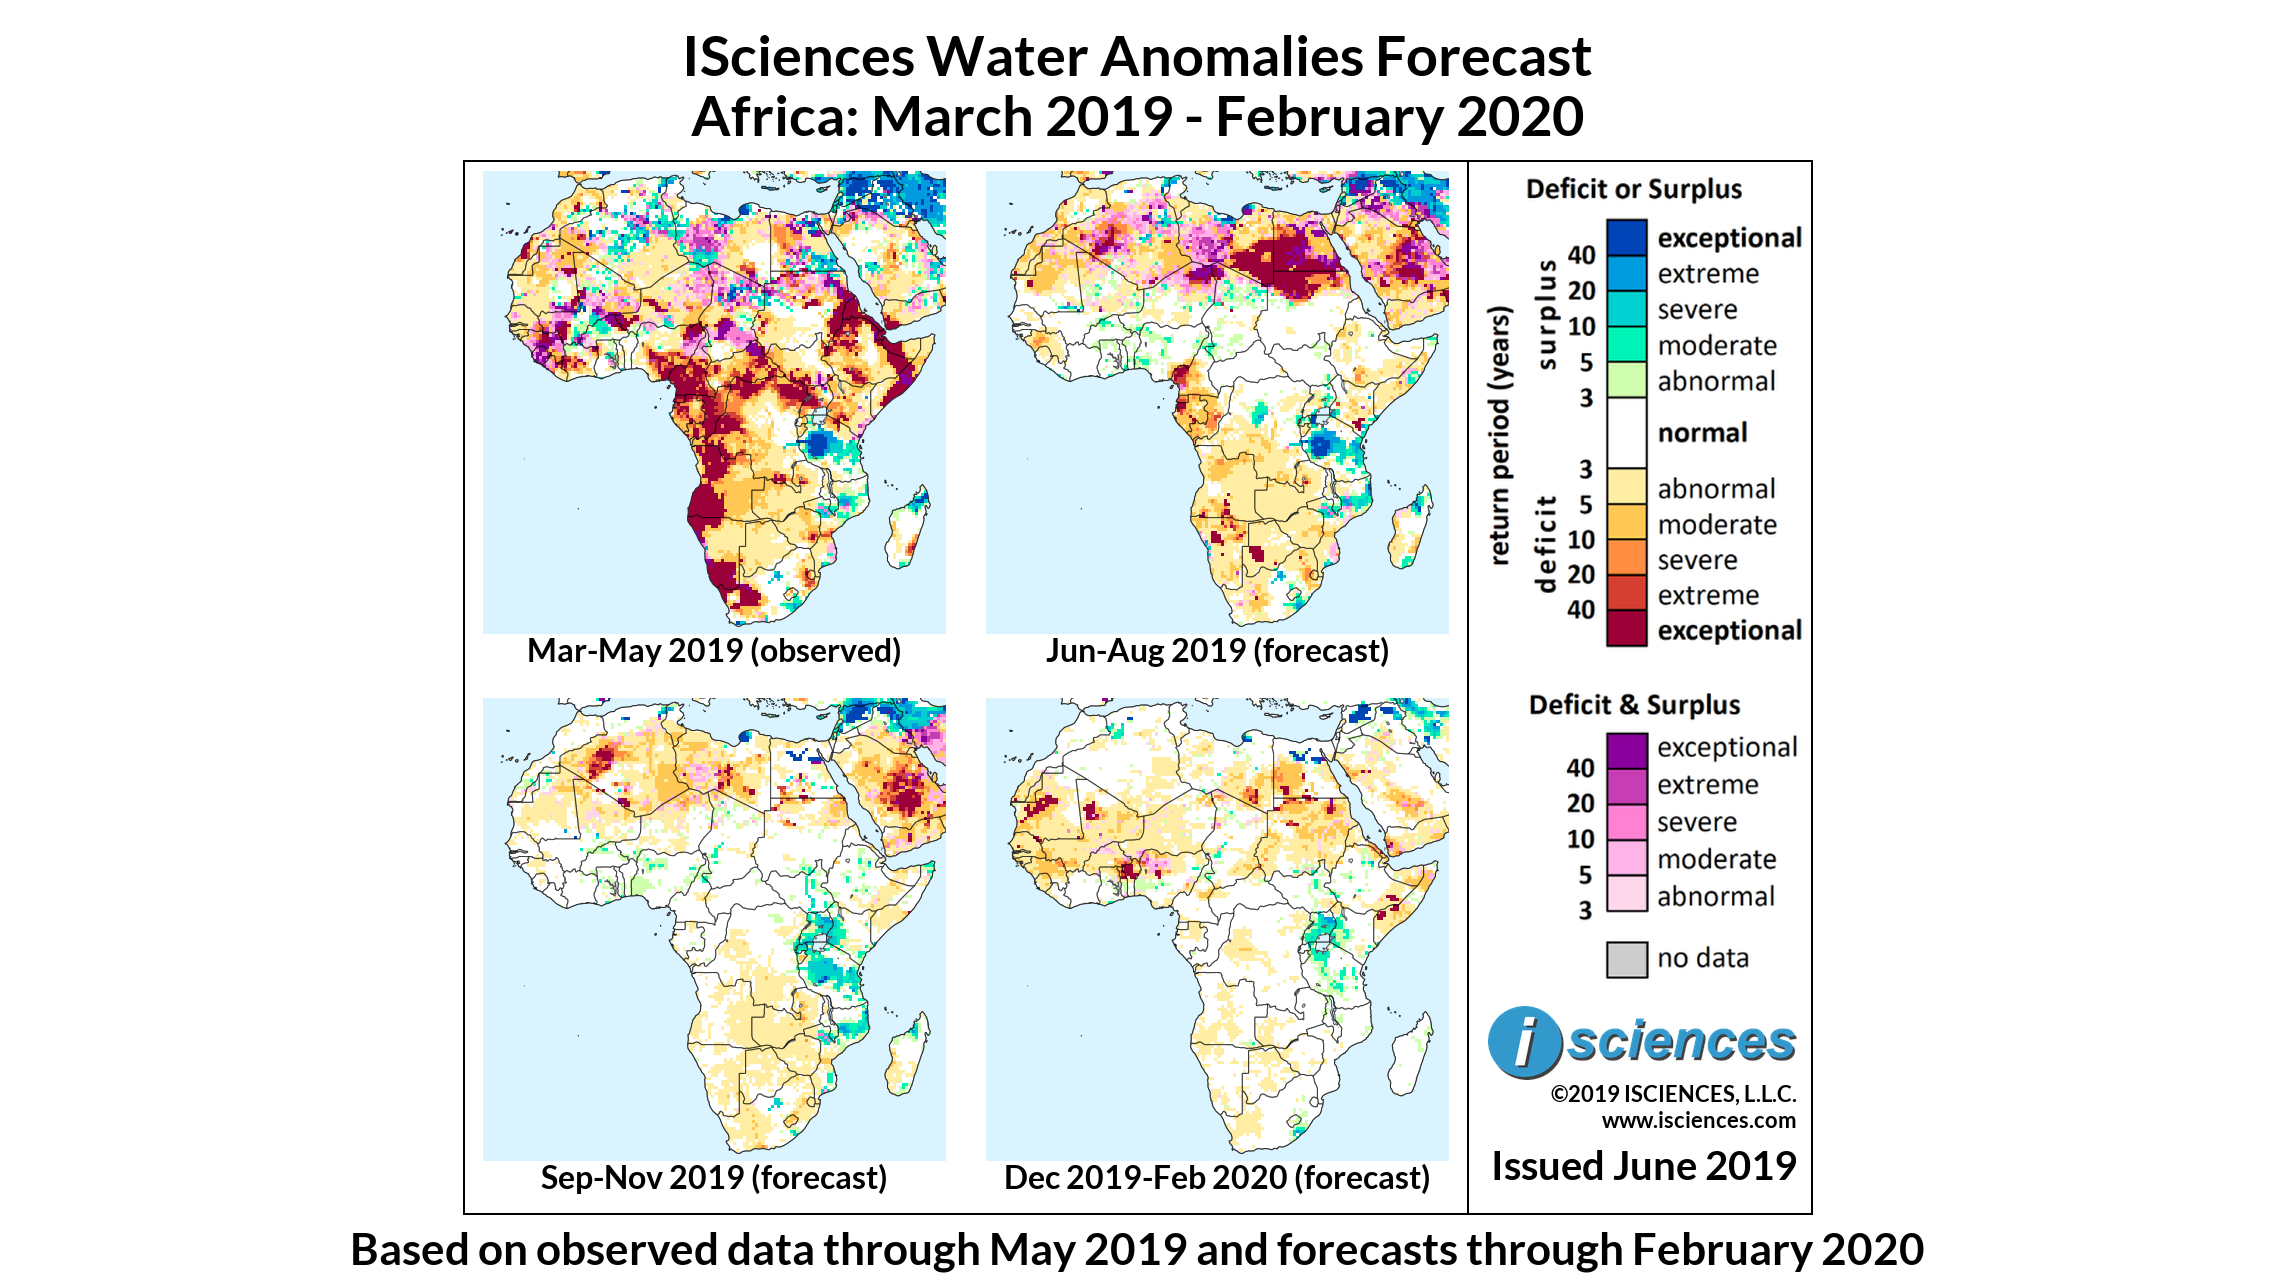 ISciences_Rf201905_Africa_Composite_Adjusted_201903-202002_3mo_panel.png